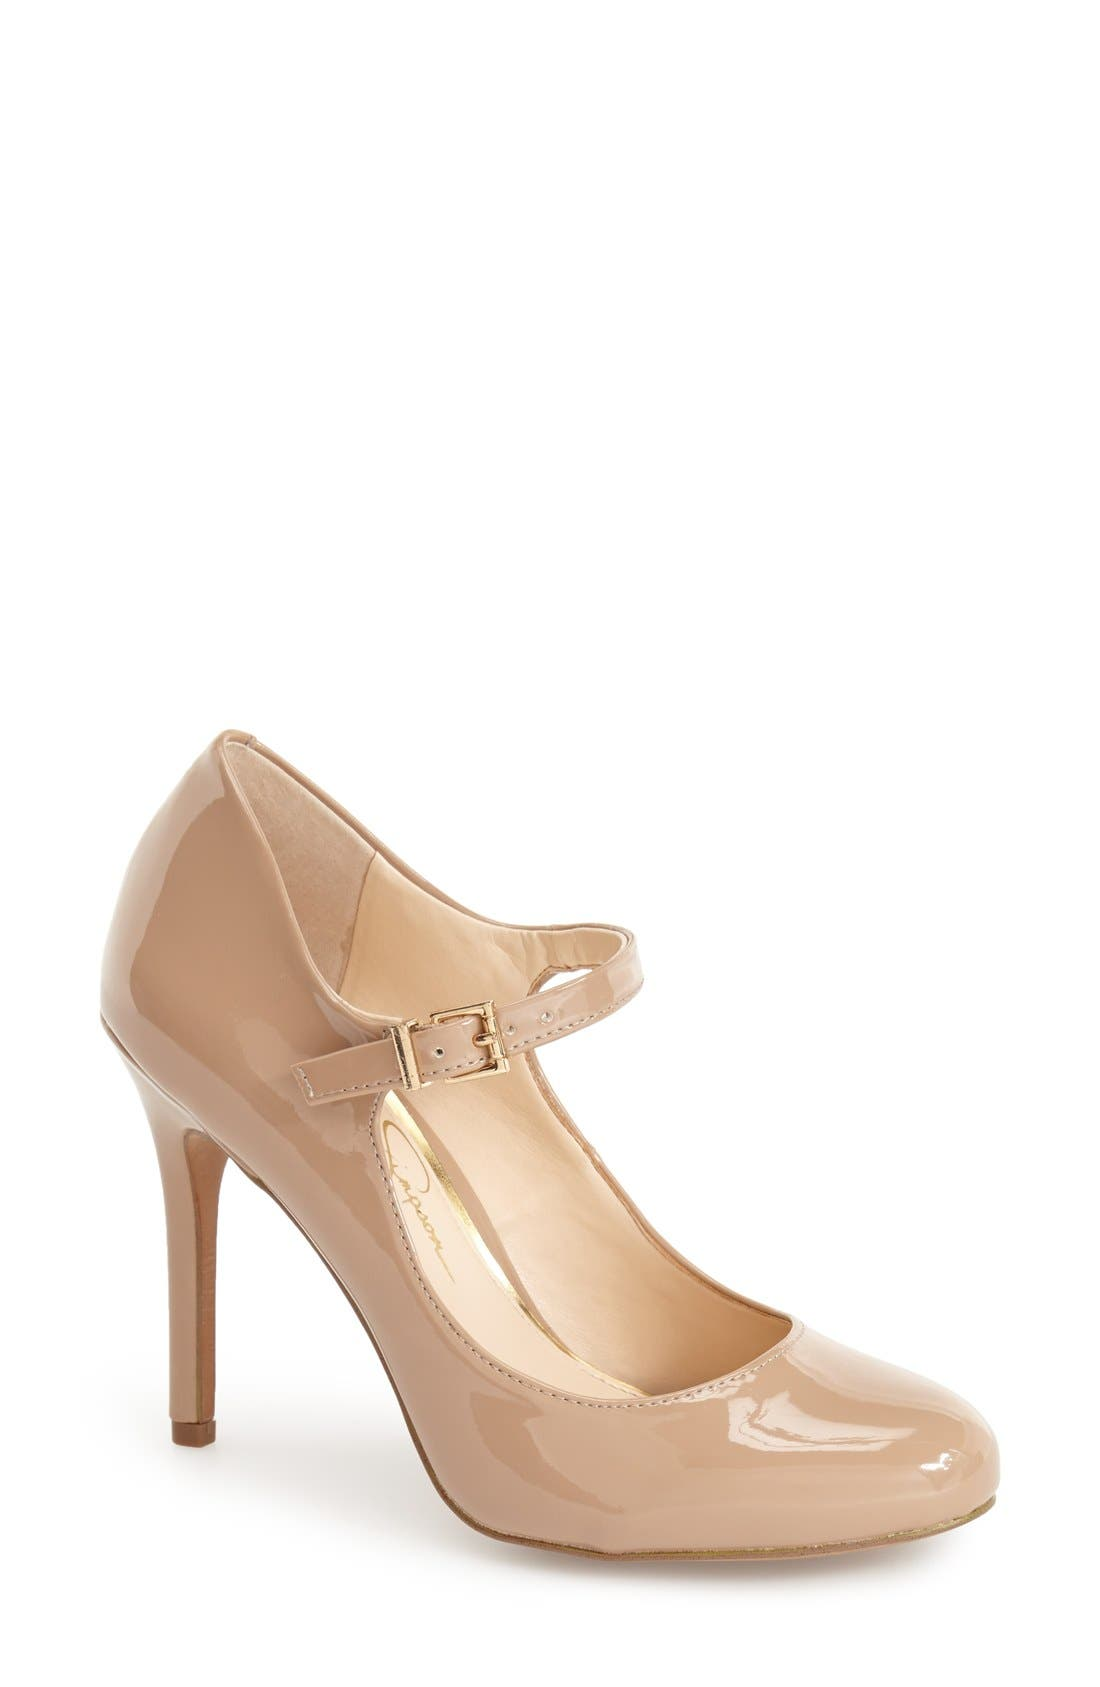 Alternate Image 1 Selected - Jessica Simpson 'Raelyn' Mary Jane Pump (Women)